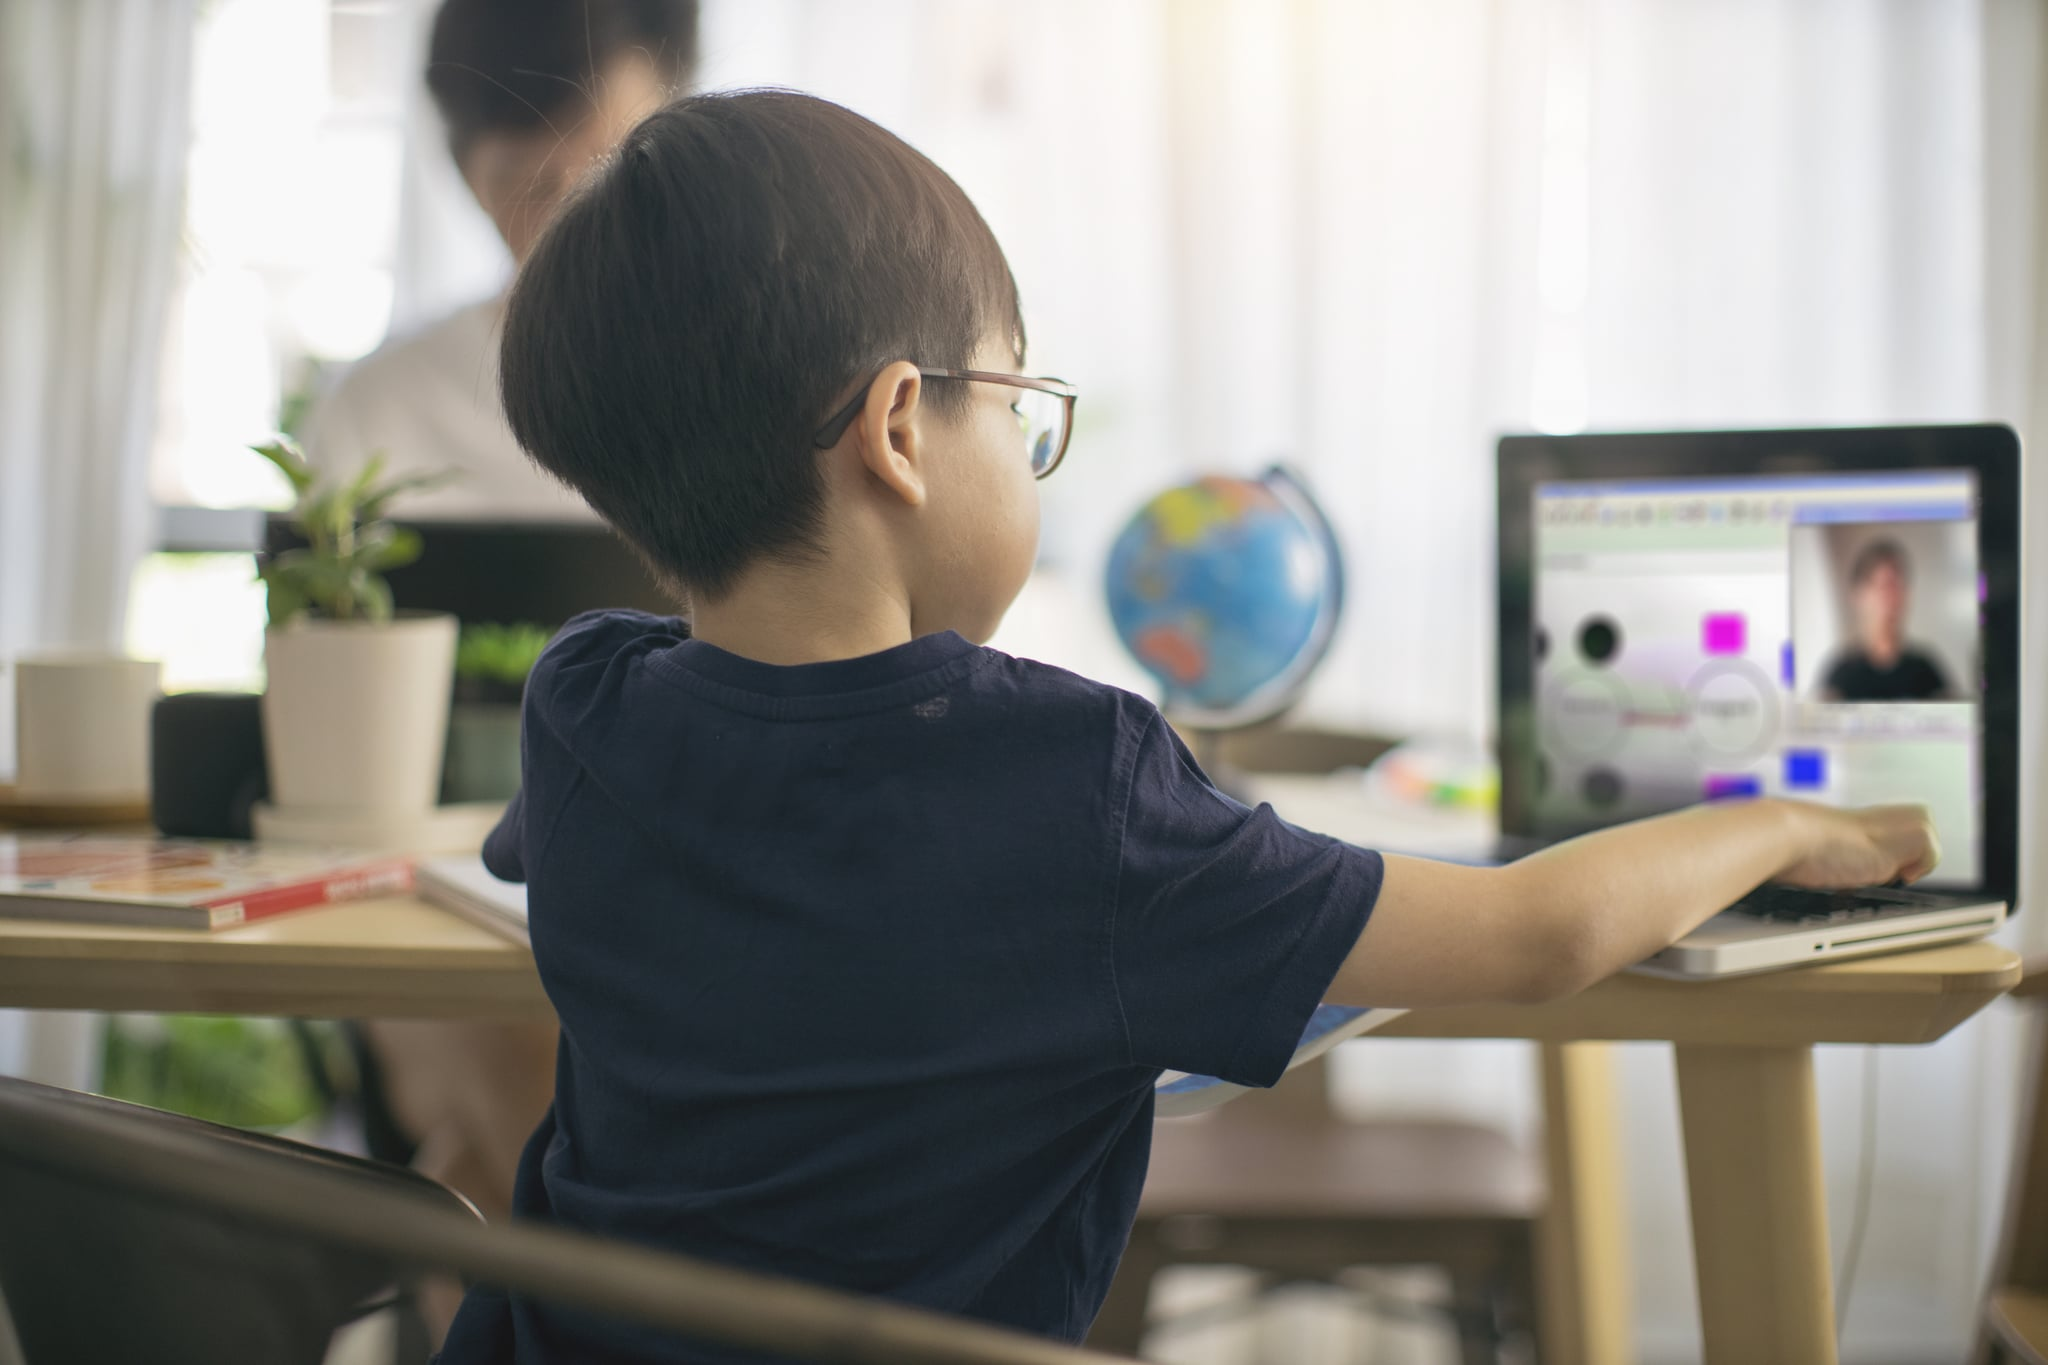 Young boy home schooling along side with work from home father.